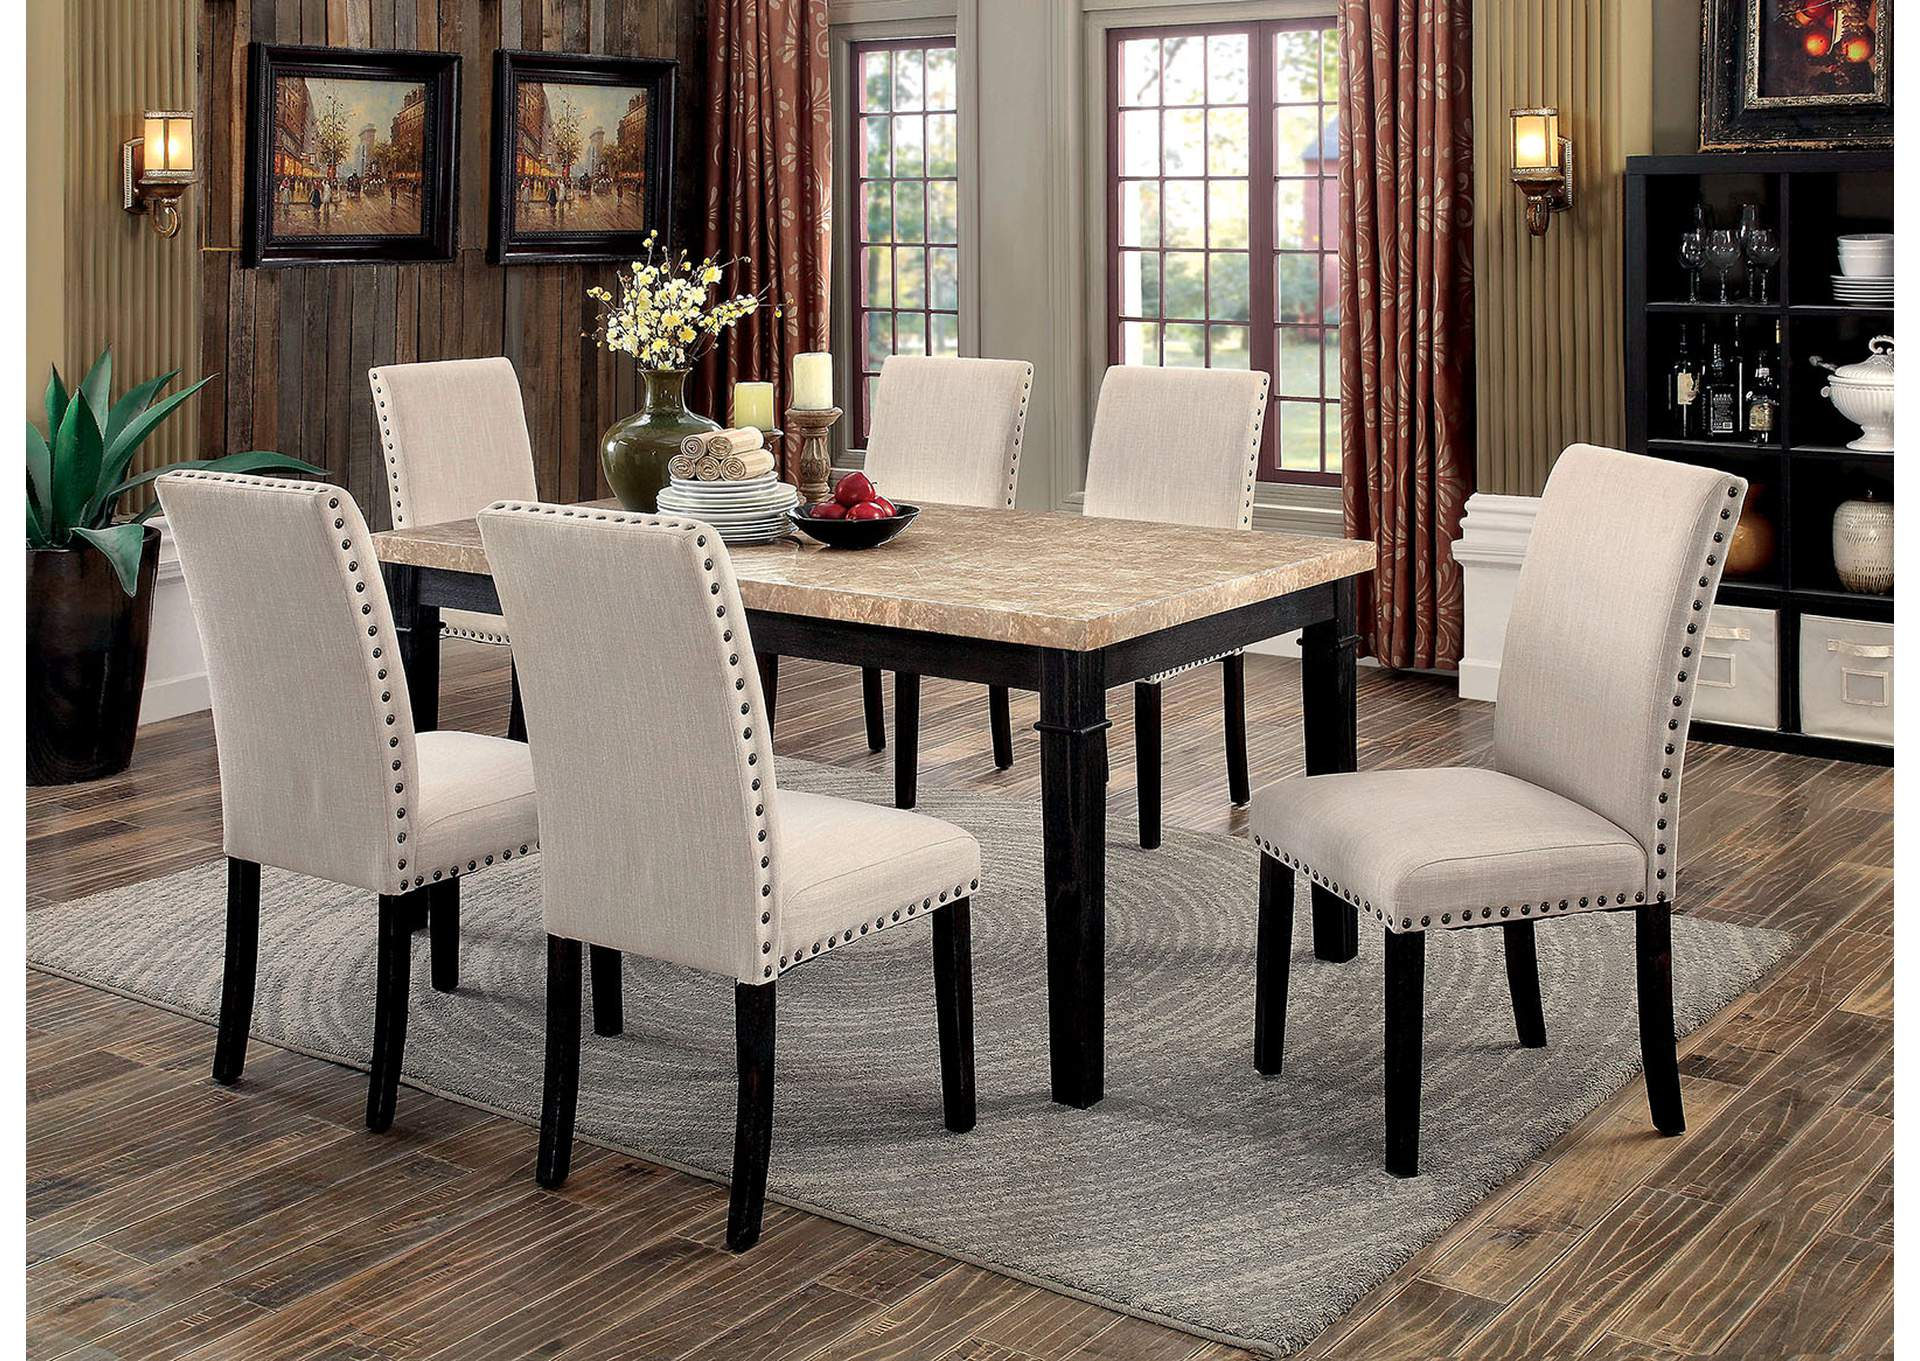 Dodson Black Dining Table,Furniture of America